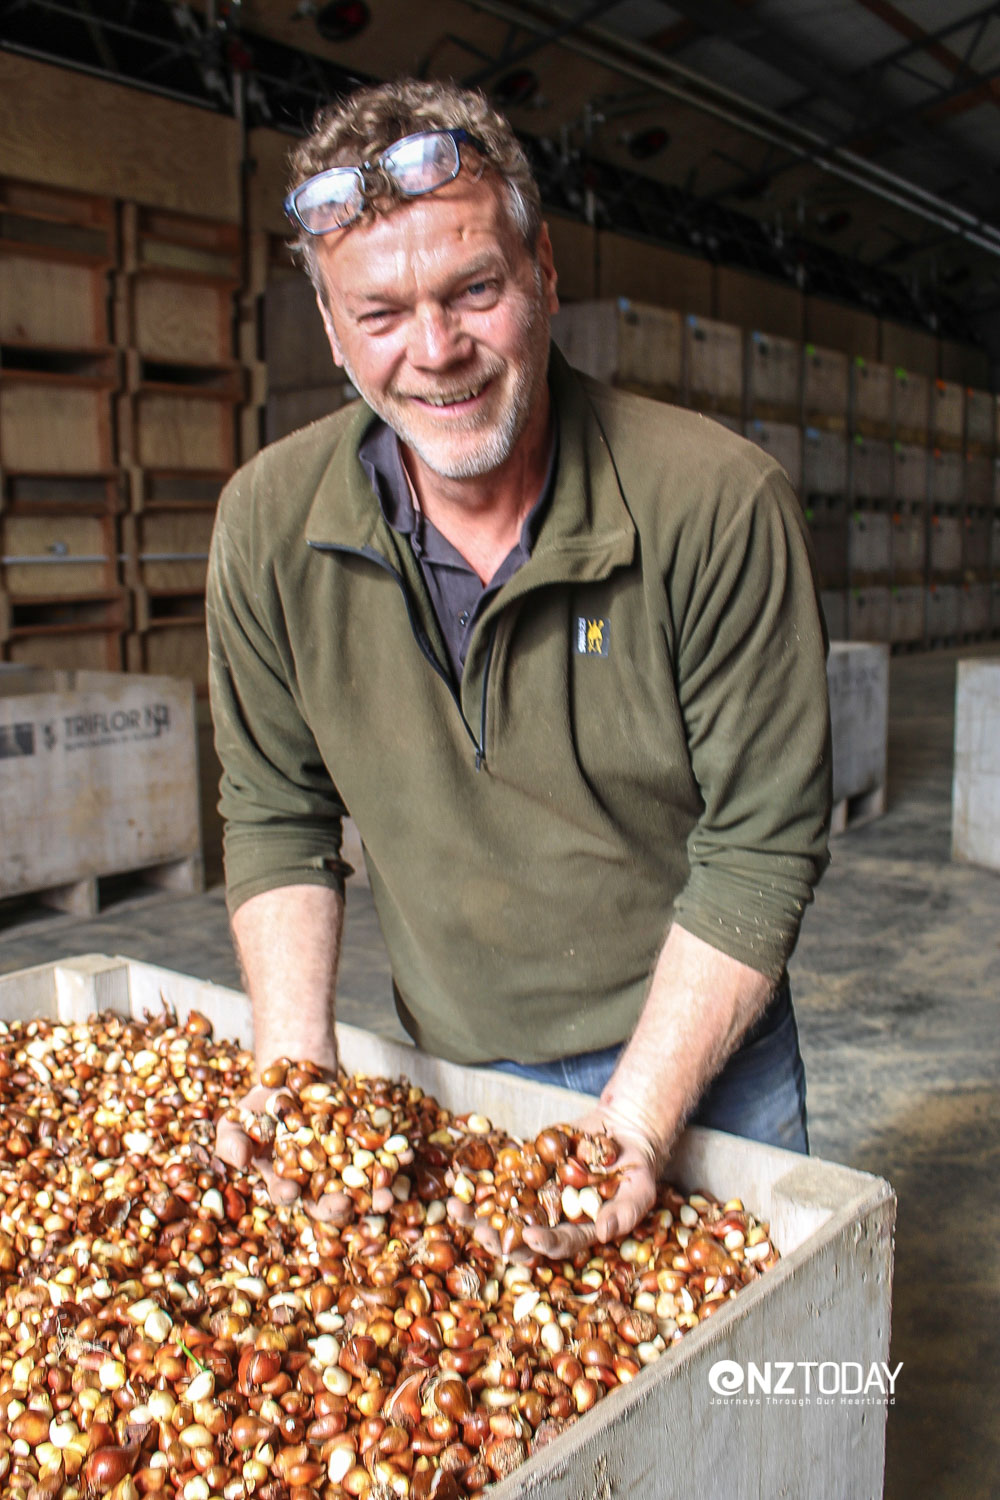 Eric the 'Bulb Man' at the Triflora plant with a couple of handfuls of tulip bulbs bound for export